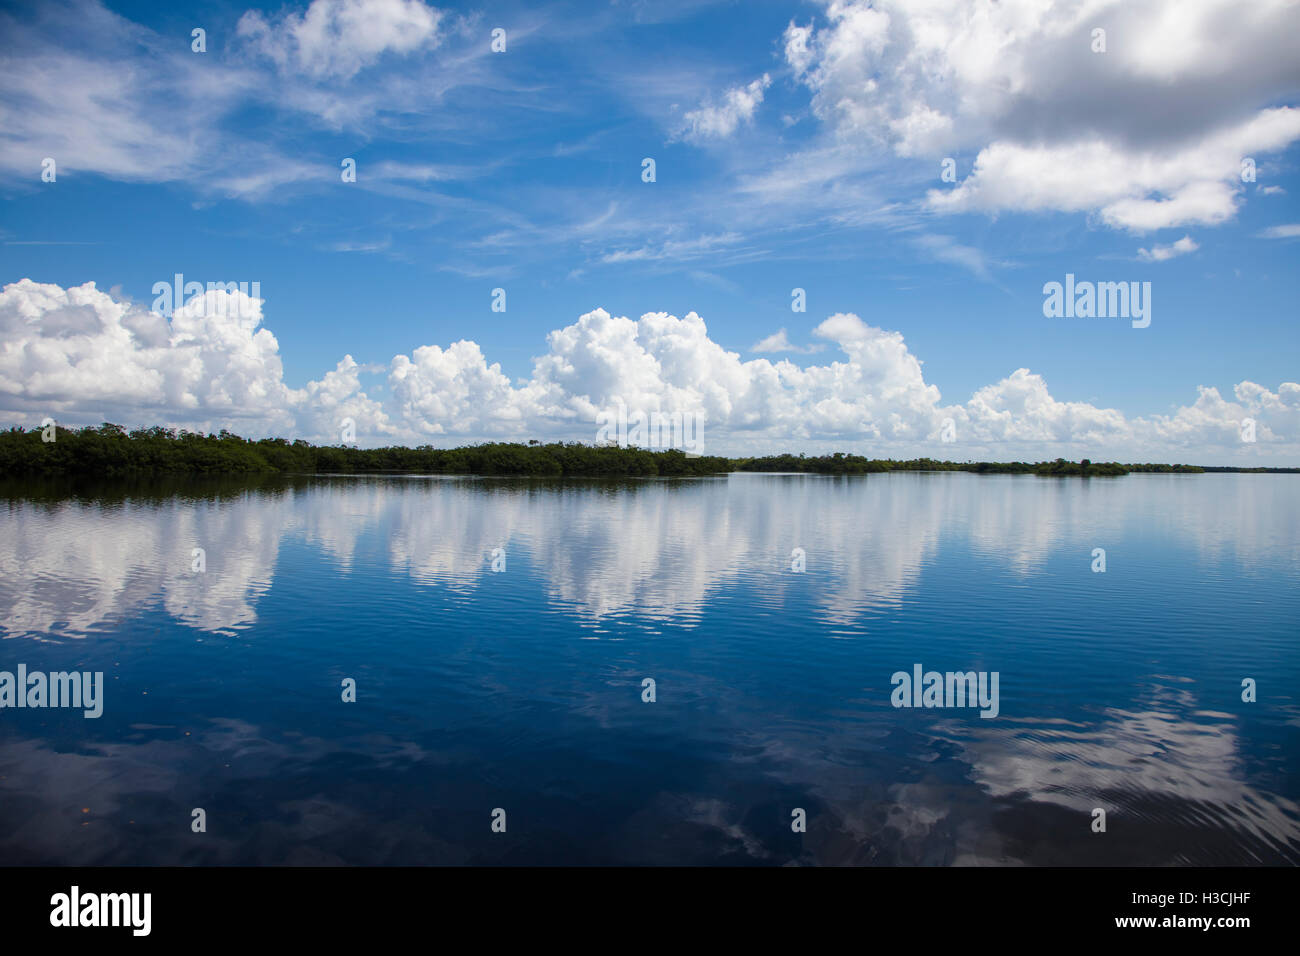 Wolken reflektieren in ruhigem Wasser in J N Ding Darling National Wildlife Refuge auf Sanibel Island Florida Stockbild